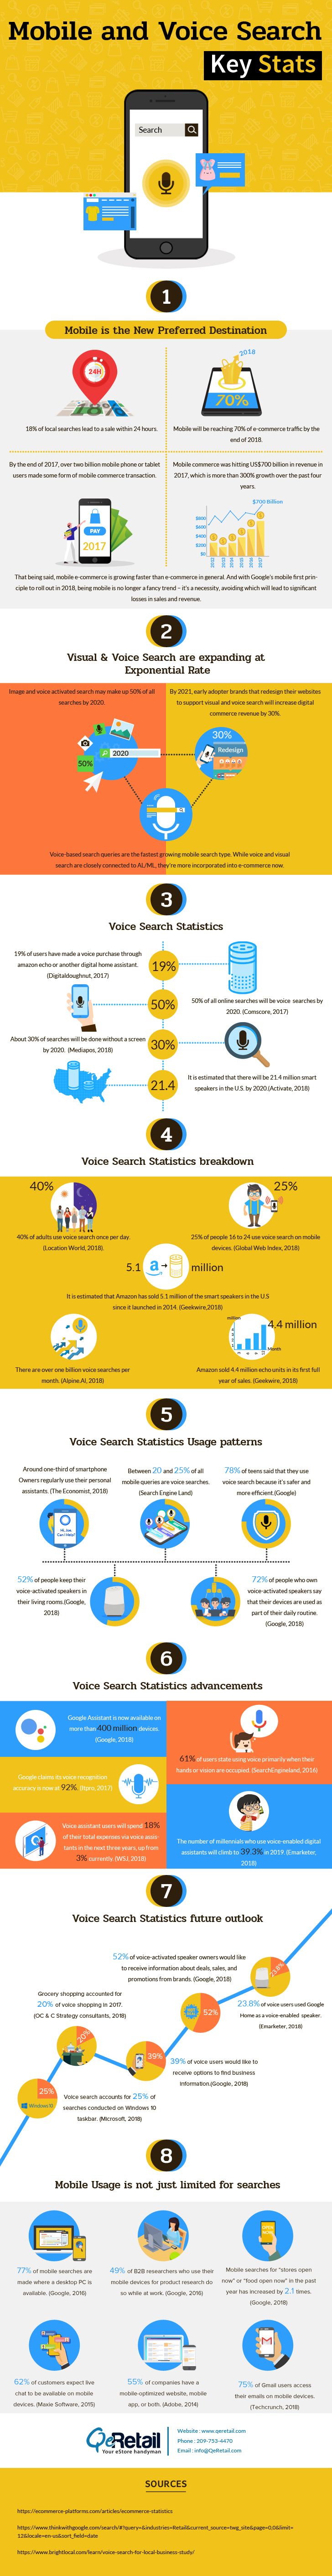 Why Mobile & Voice Search will Dominate eCommerce?